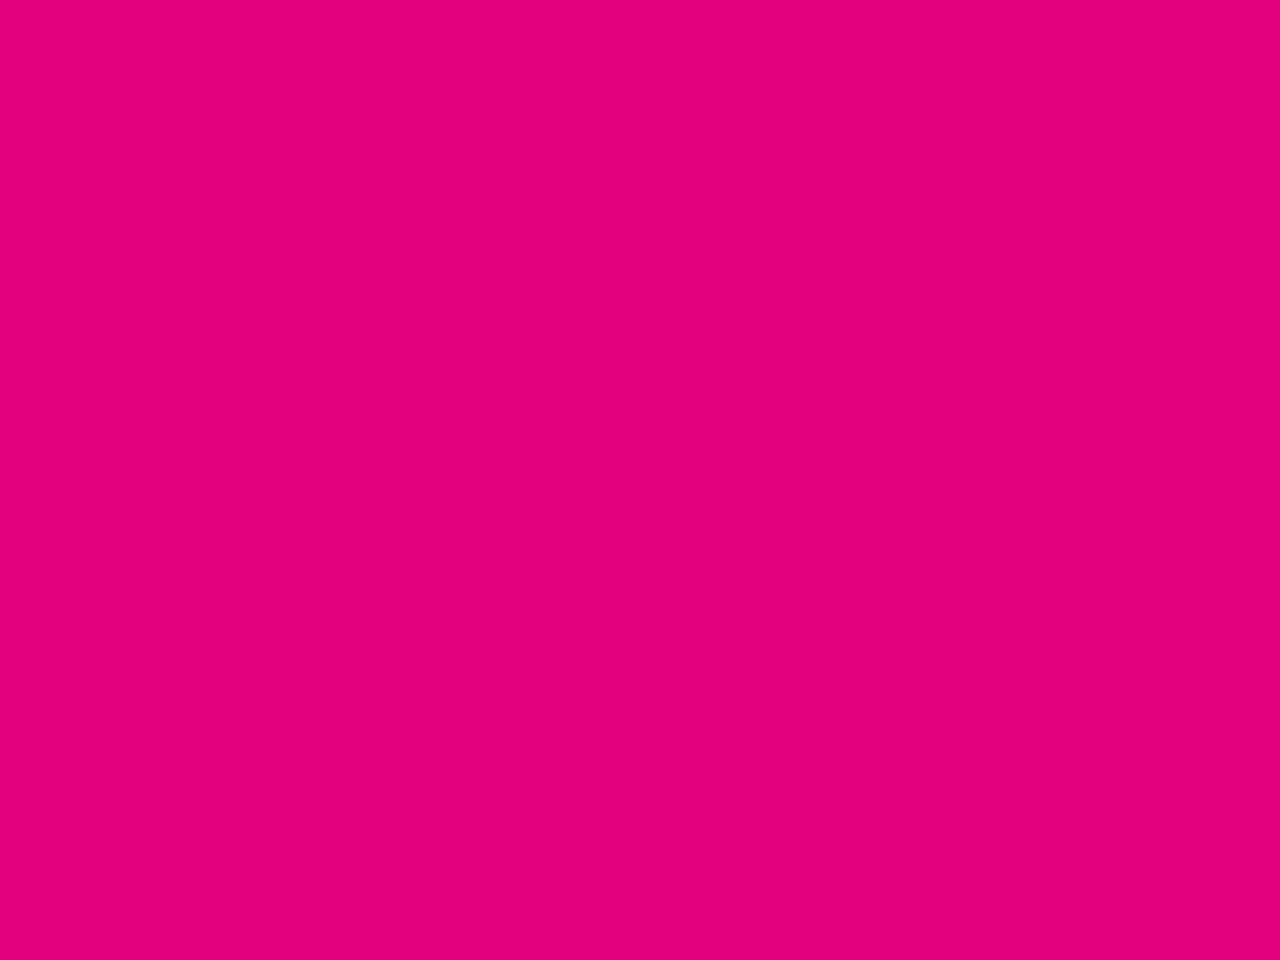 1280x960 Mexican Pink Solid Color Background